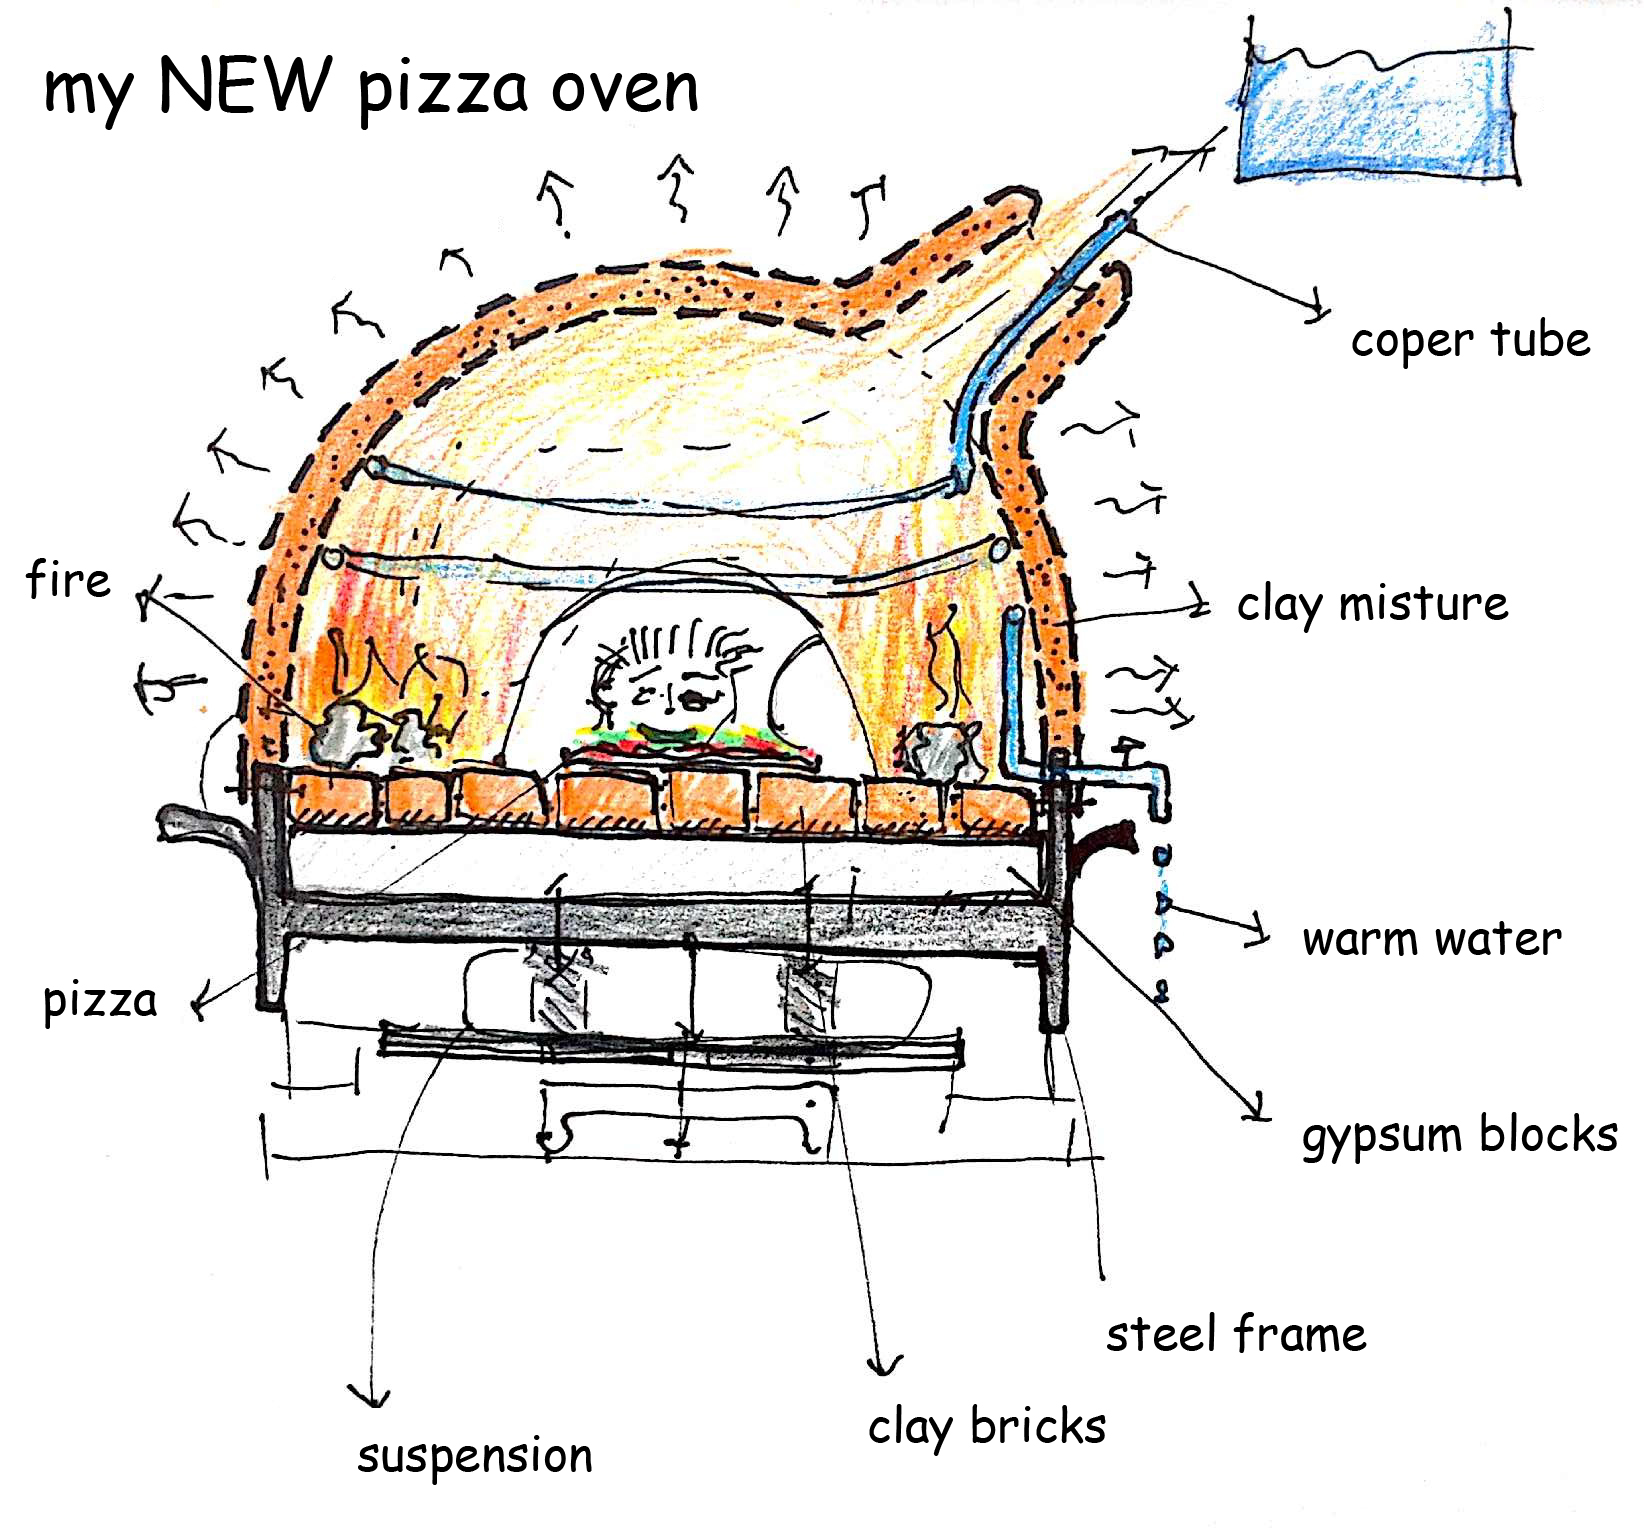 news 2 3 my pizza ovenmy pizza oven page 2